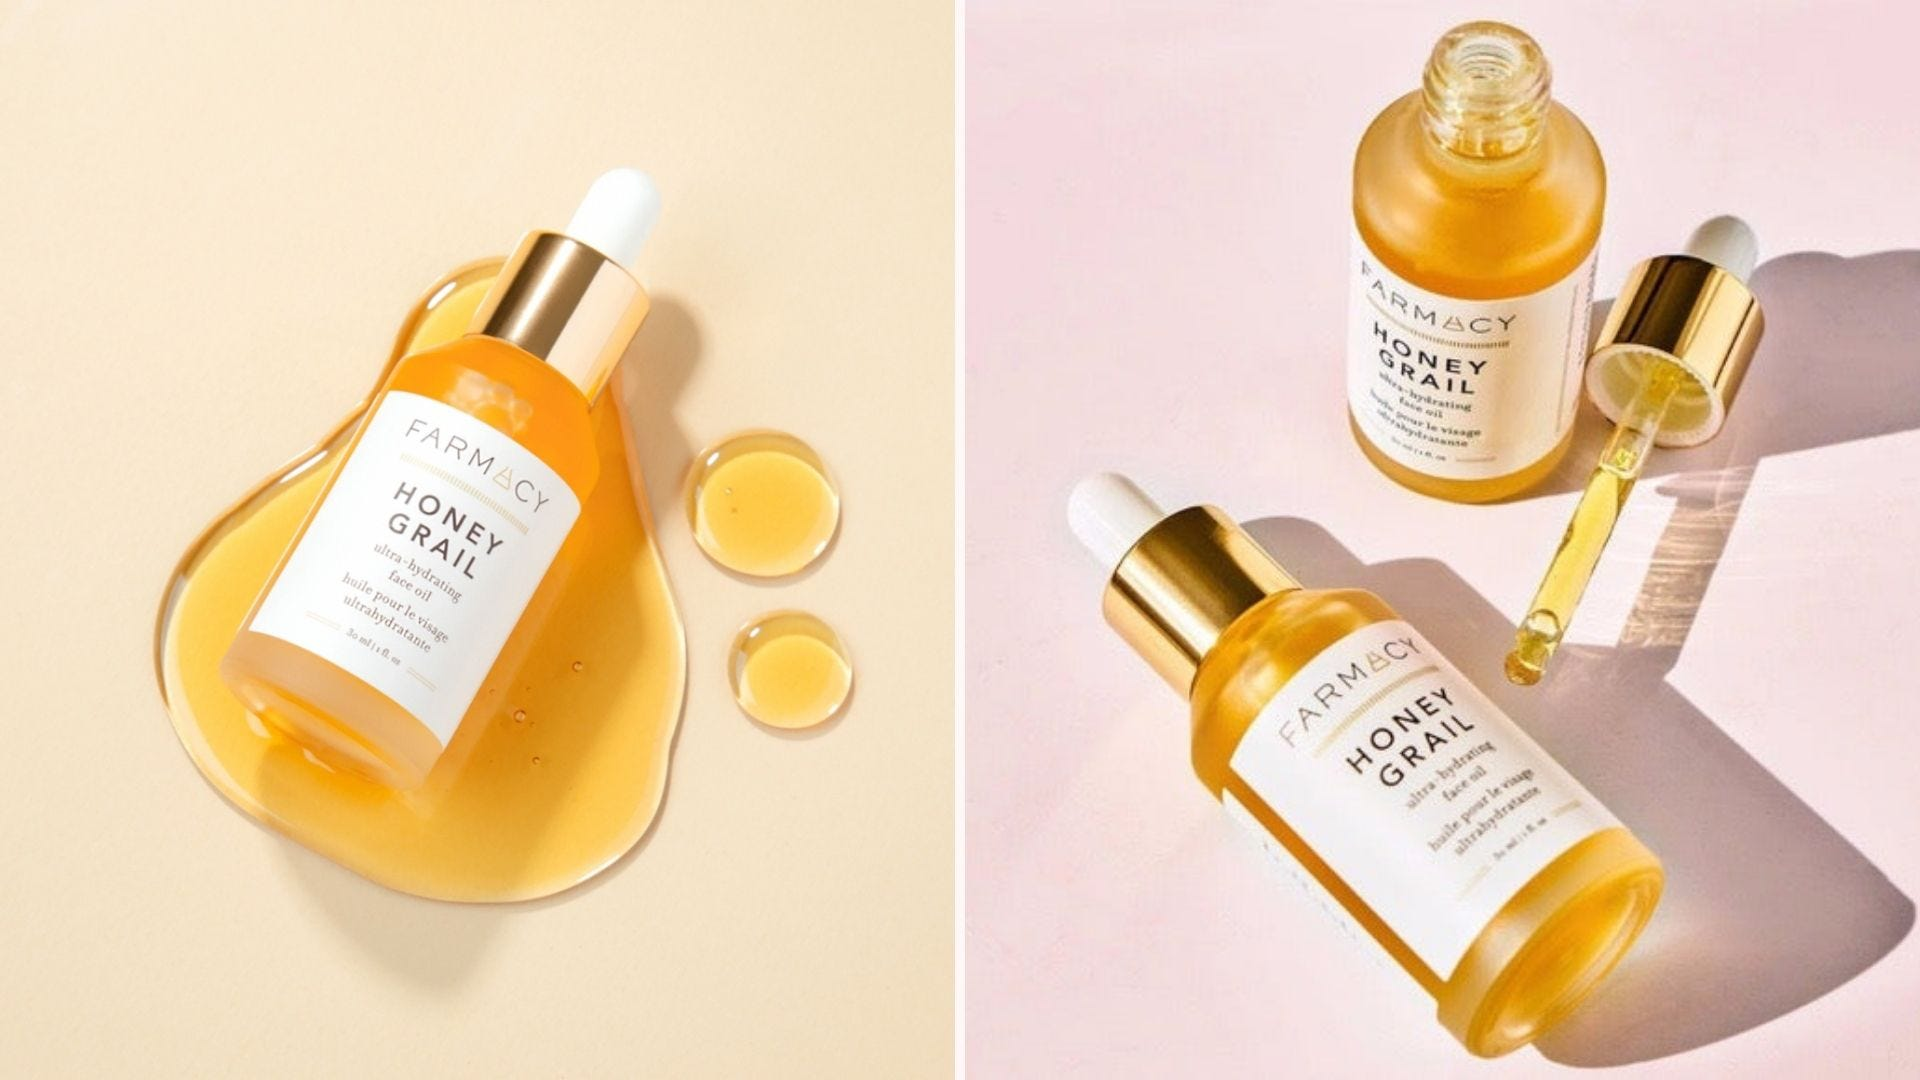 Bottles of gold-colored facial oil, both open and closed bottles